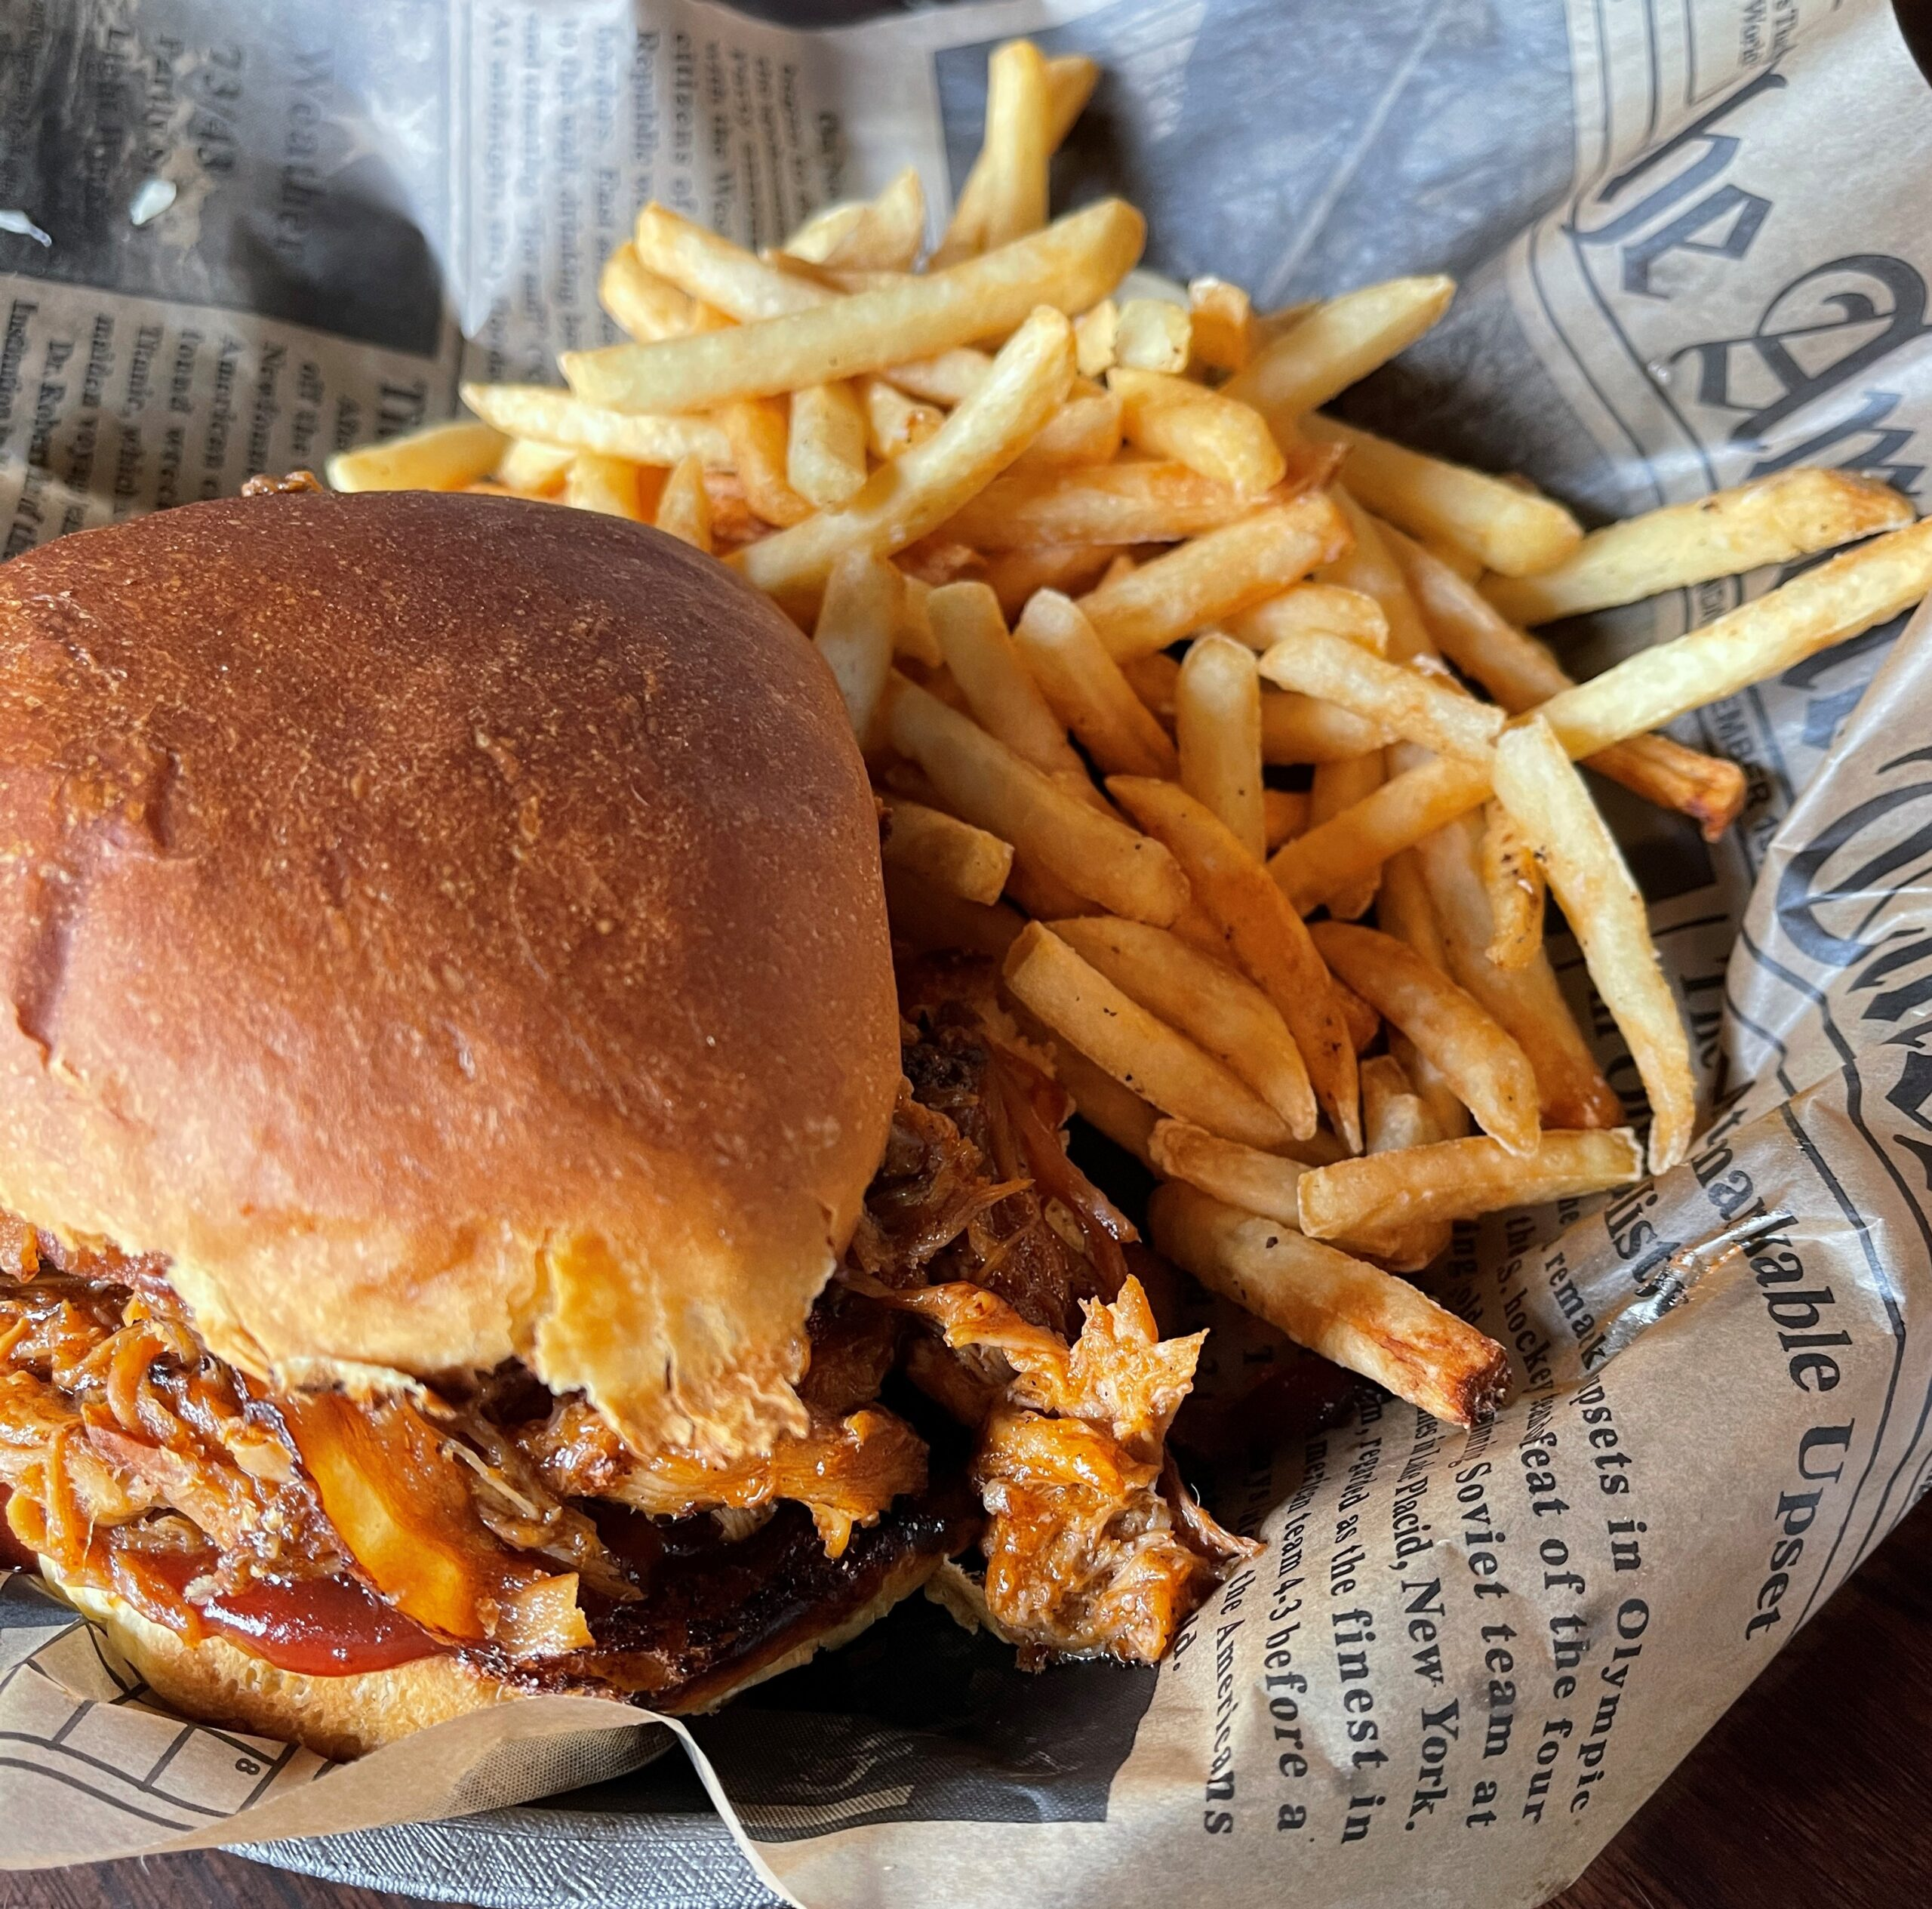 Pulled Pork sandwich at the Route 67 Saloon in Elkhart Lake.